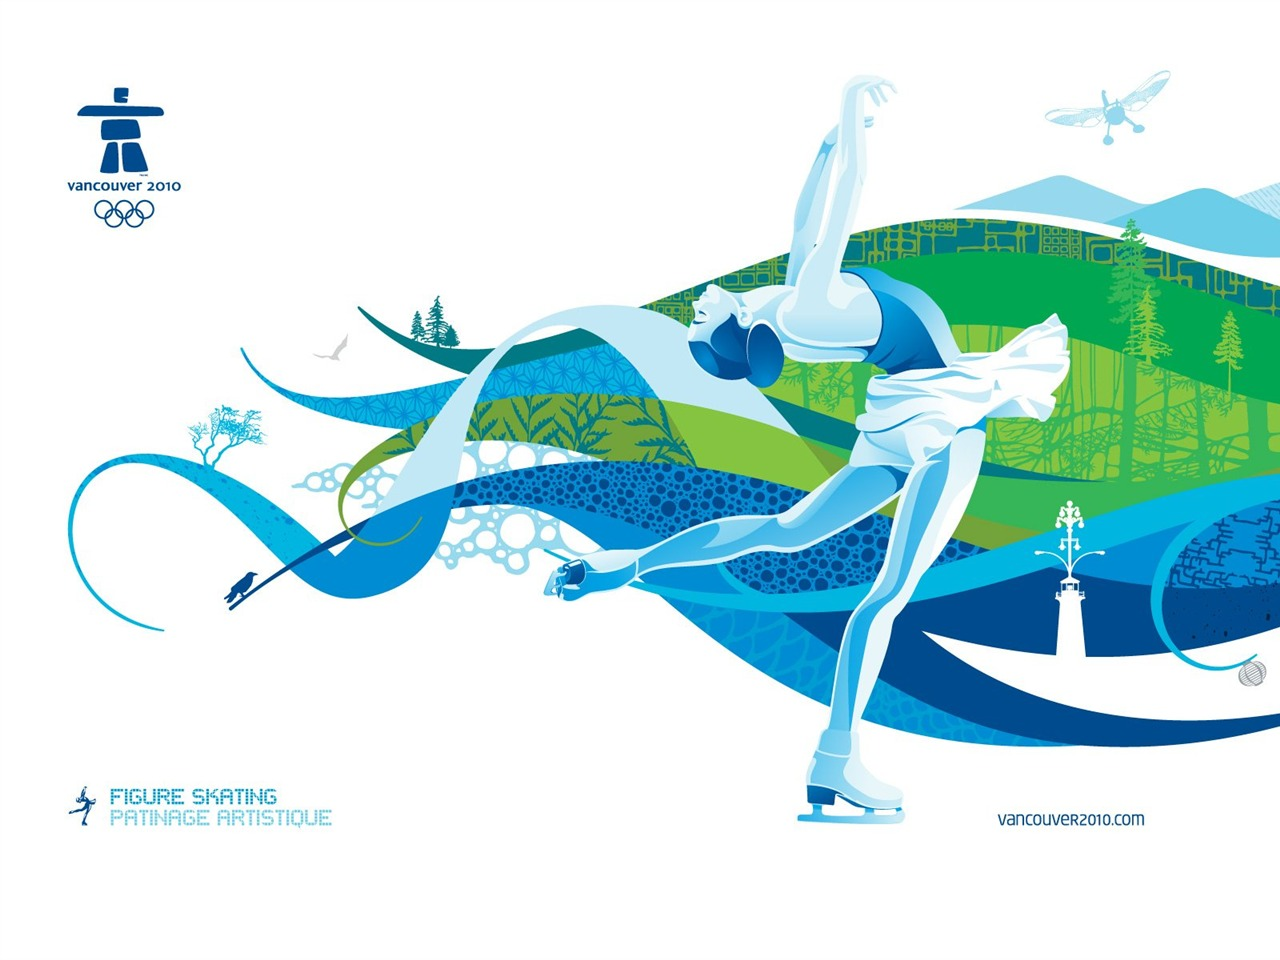 Vancouver 2010 winter olympics photo 1280x960 wallpaper download